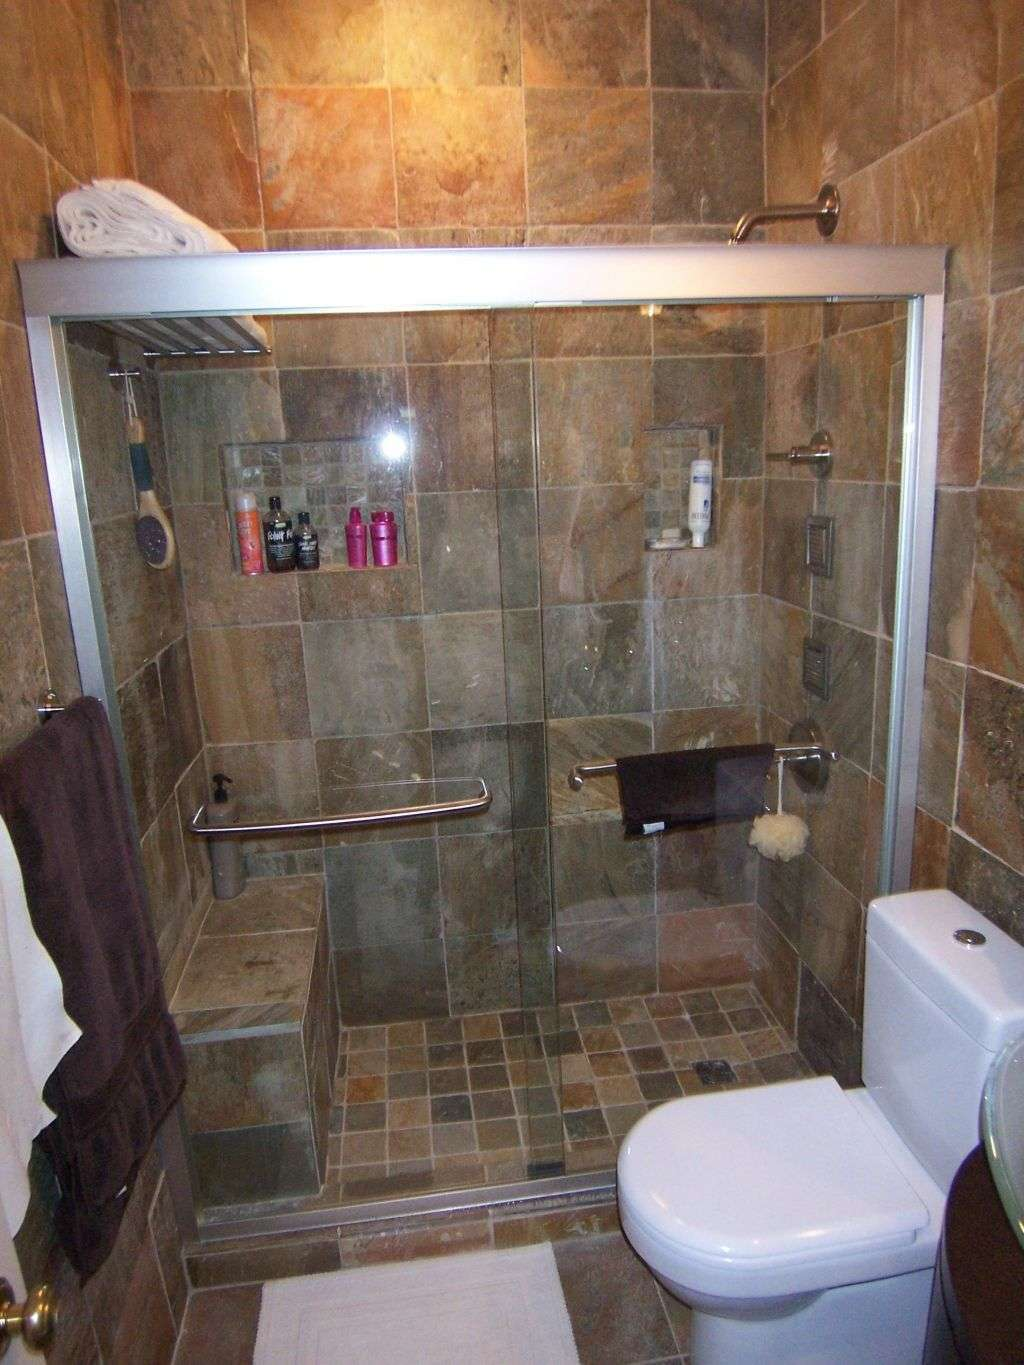 40 wonderful pictures and ideas of 1920s bathroom tile designs - Remodel bathroom designs ...